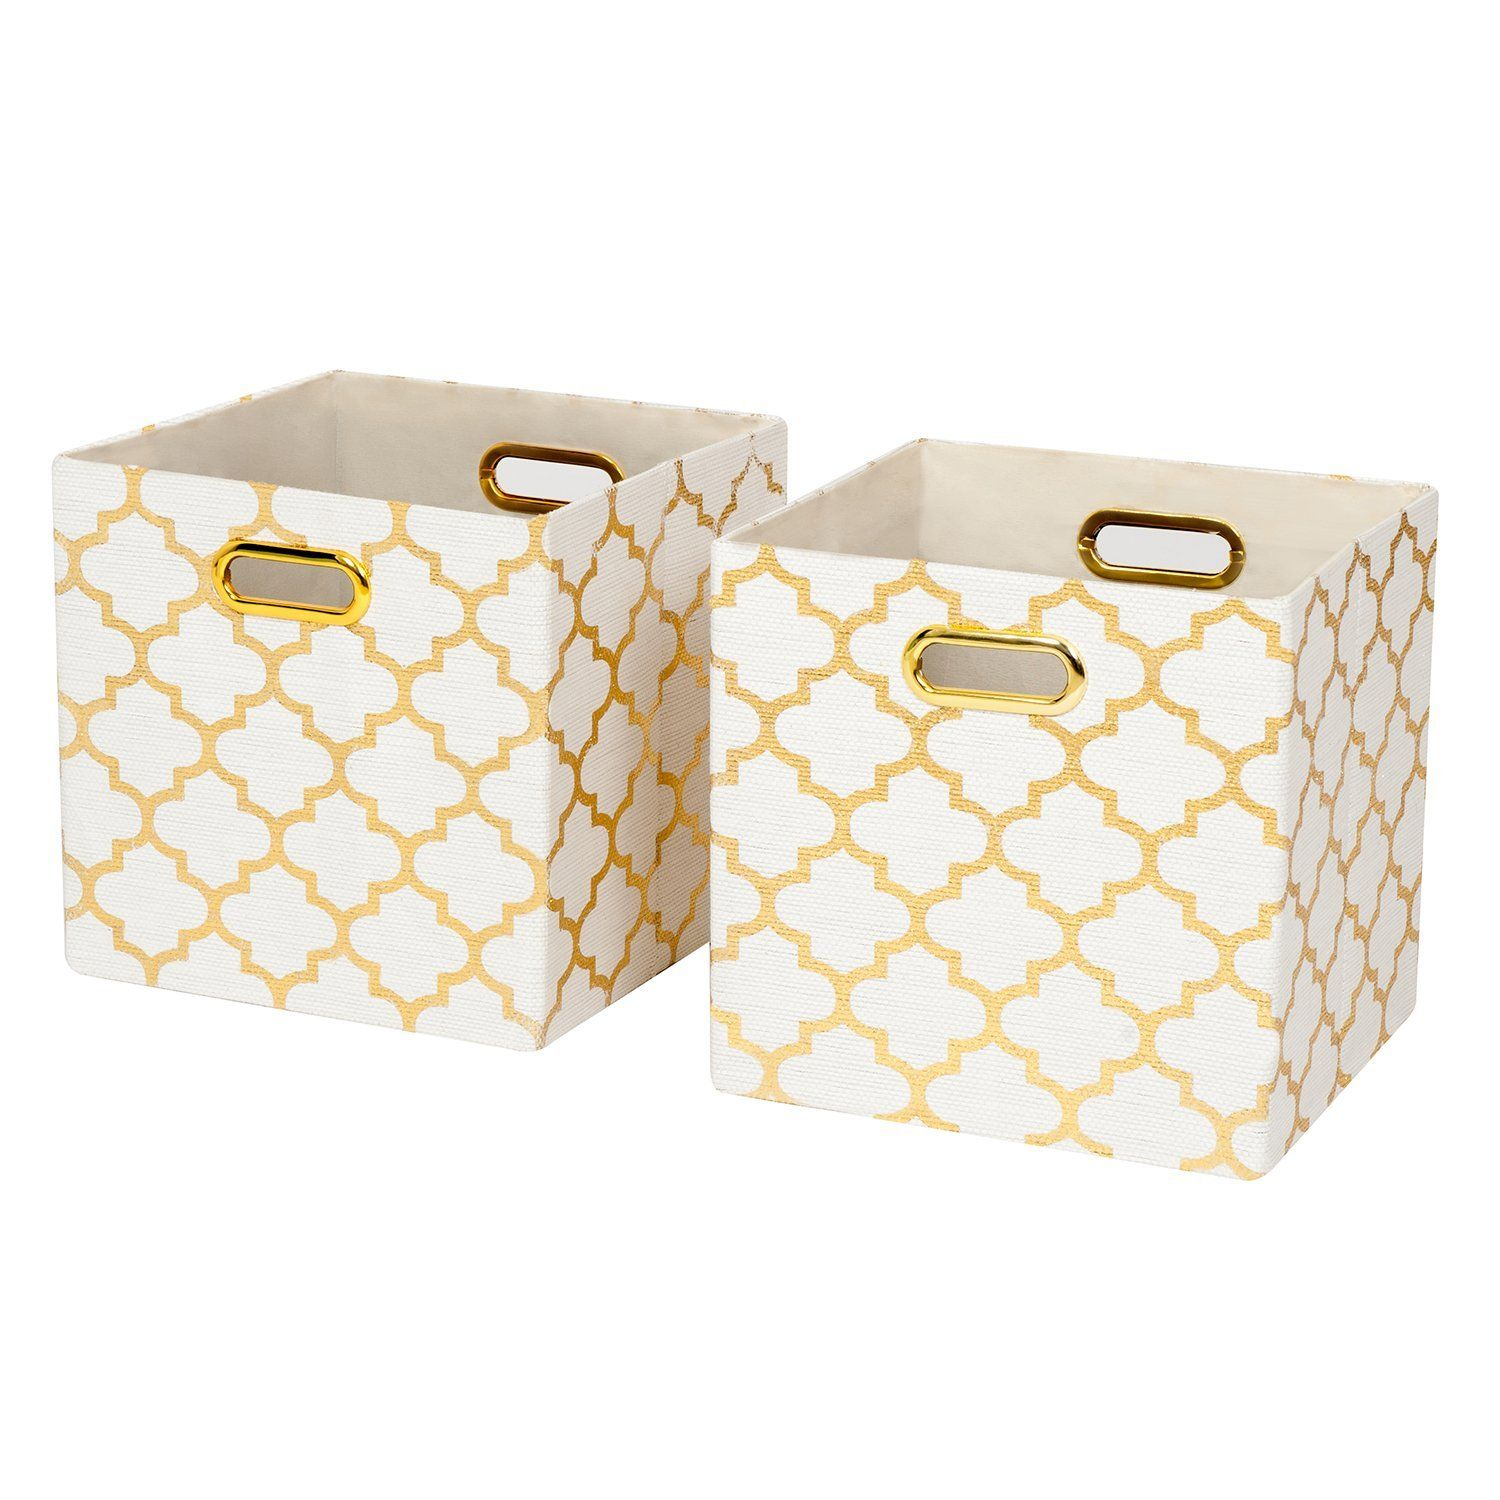 Amazon Com Posprica Collapsible Storage Cubes Organizer Basket Bins Containers Drawers For Toy C Storage Bins Organization Fabric Storage Bins Canvas Storage